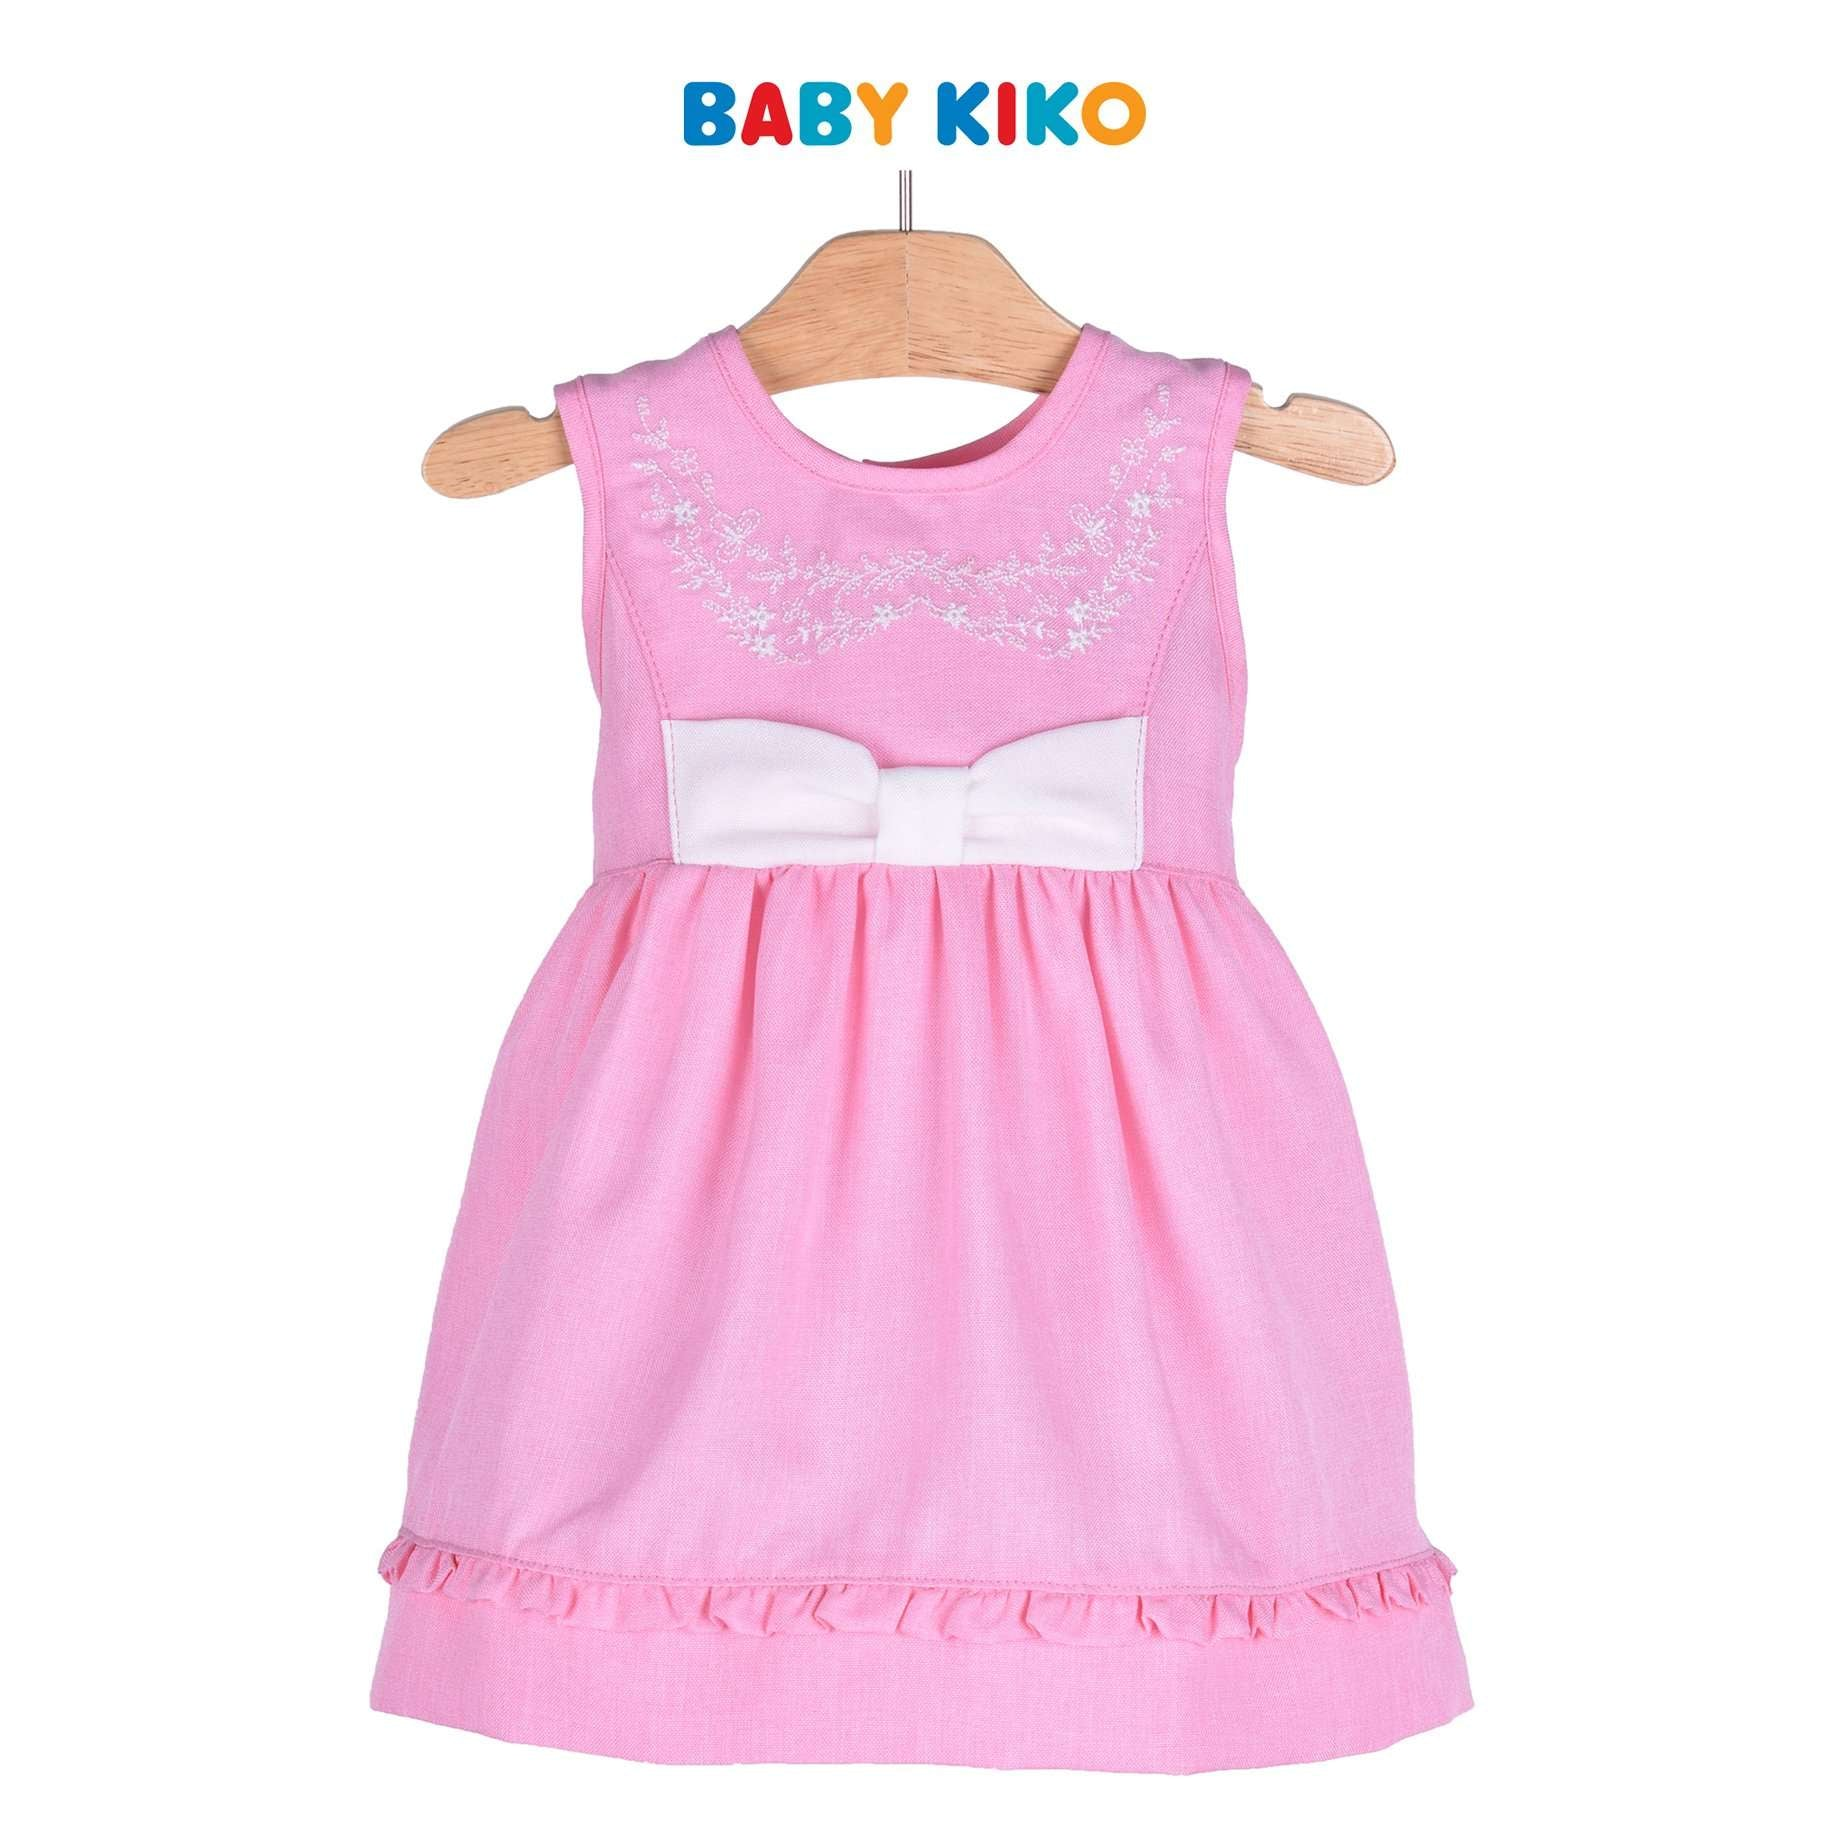 Baby KIKO Baby Girl Sleeveless Dress 310105-311 : Buy Baby KIKO online at CMG.MY